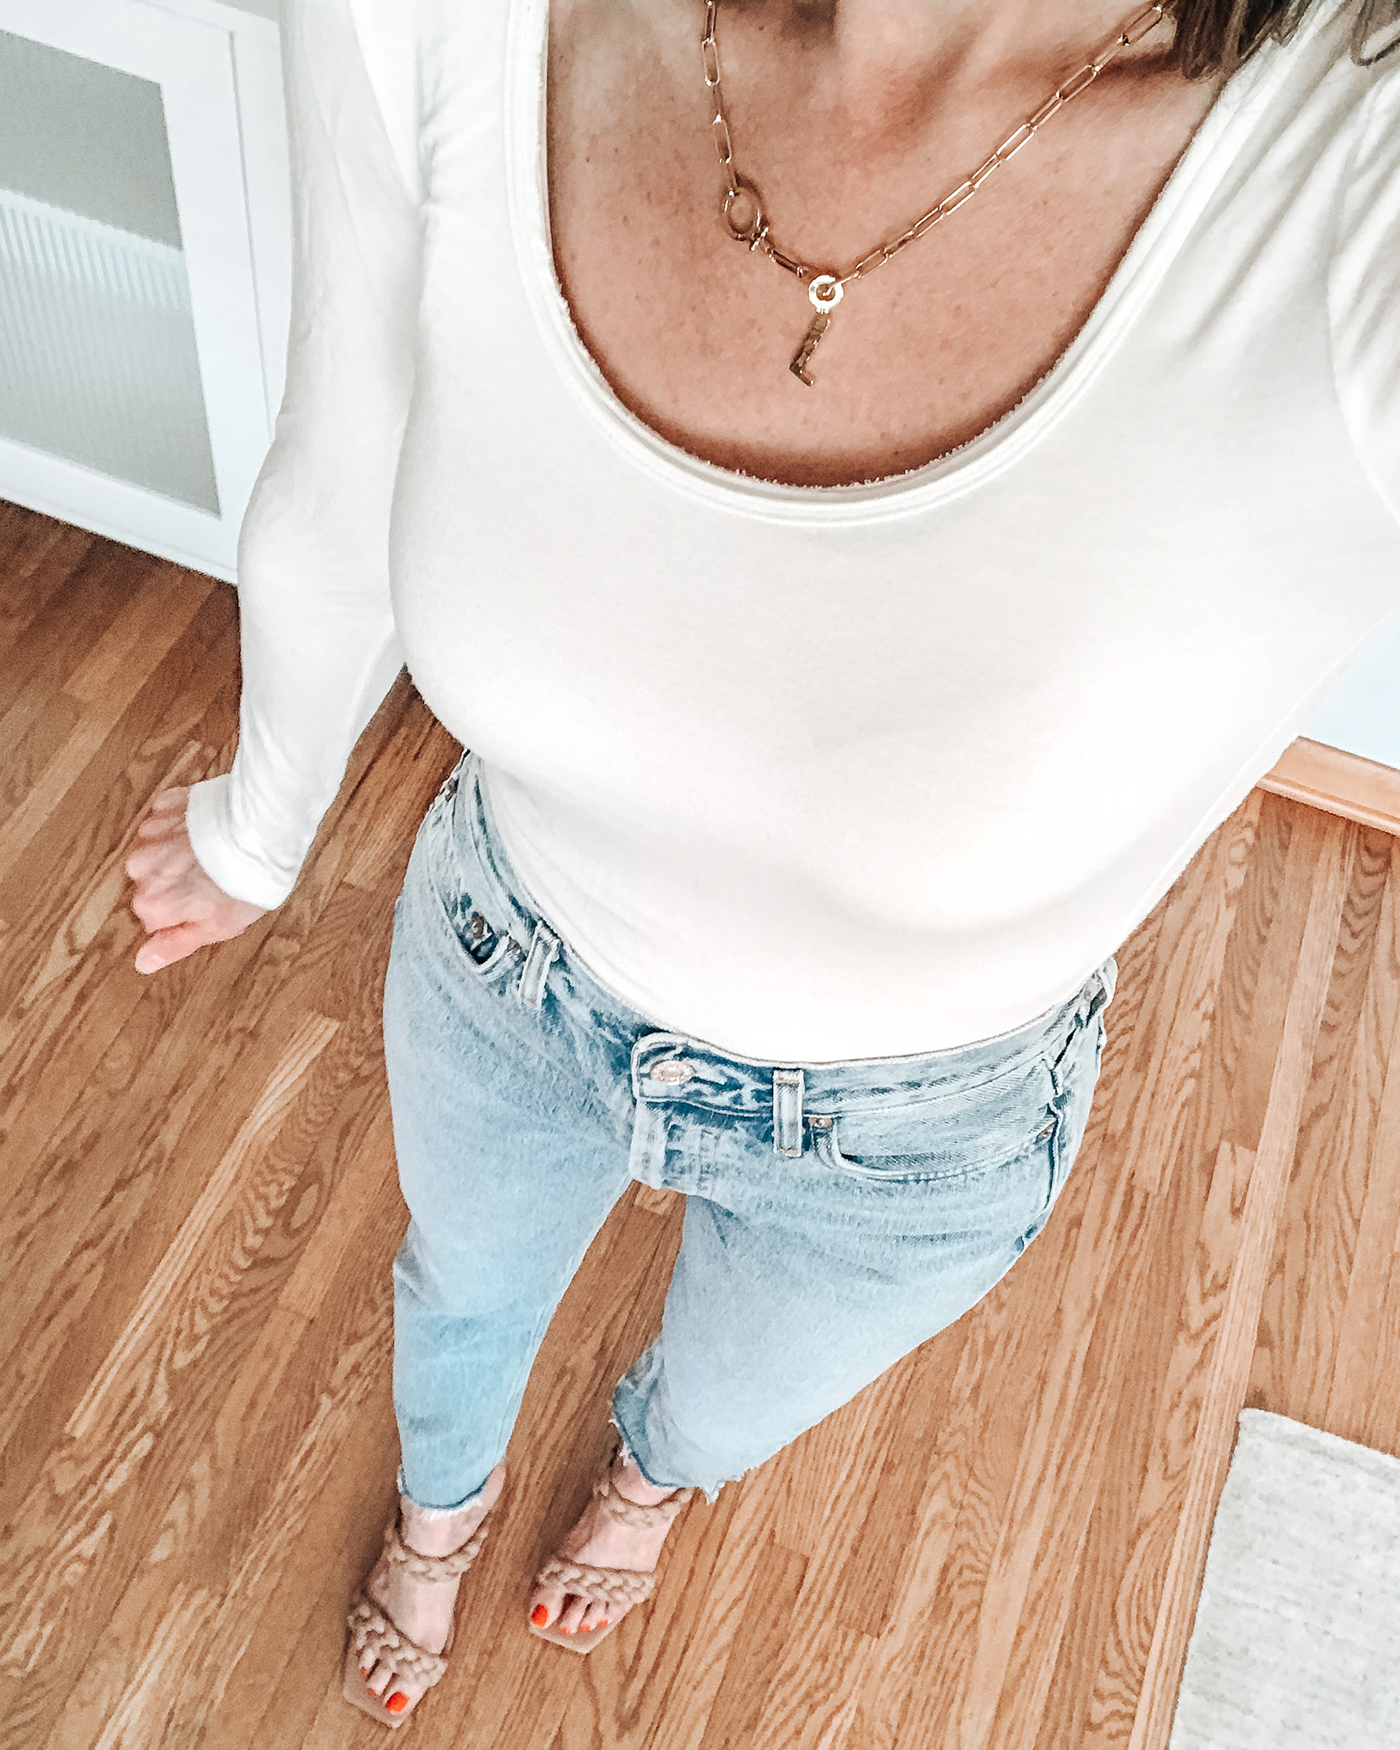 style influencer over 40, agolde 90s jeans, dolce vita braided sandals